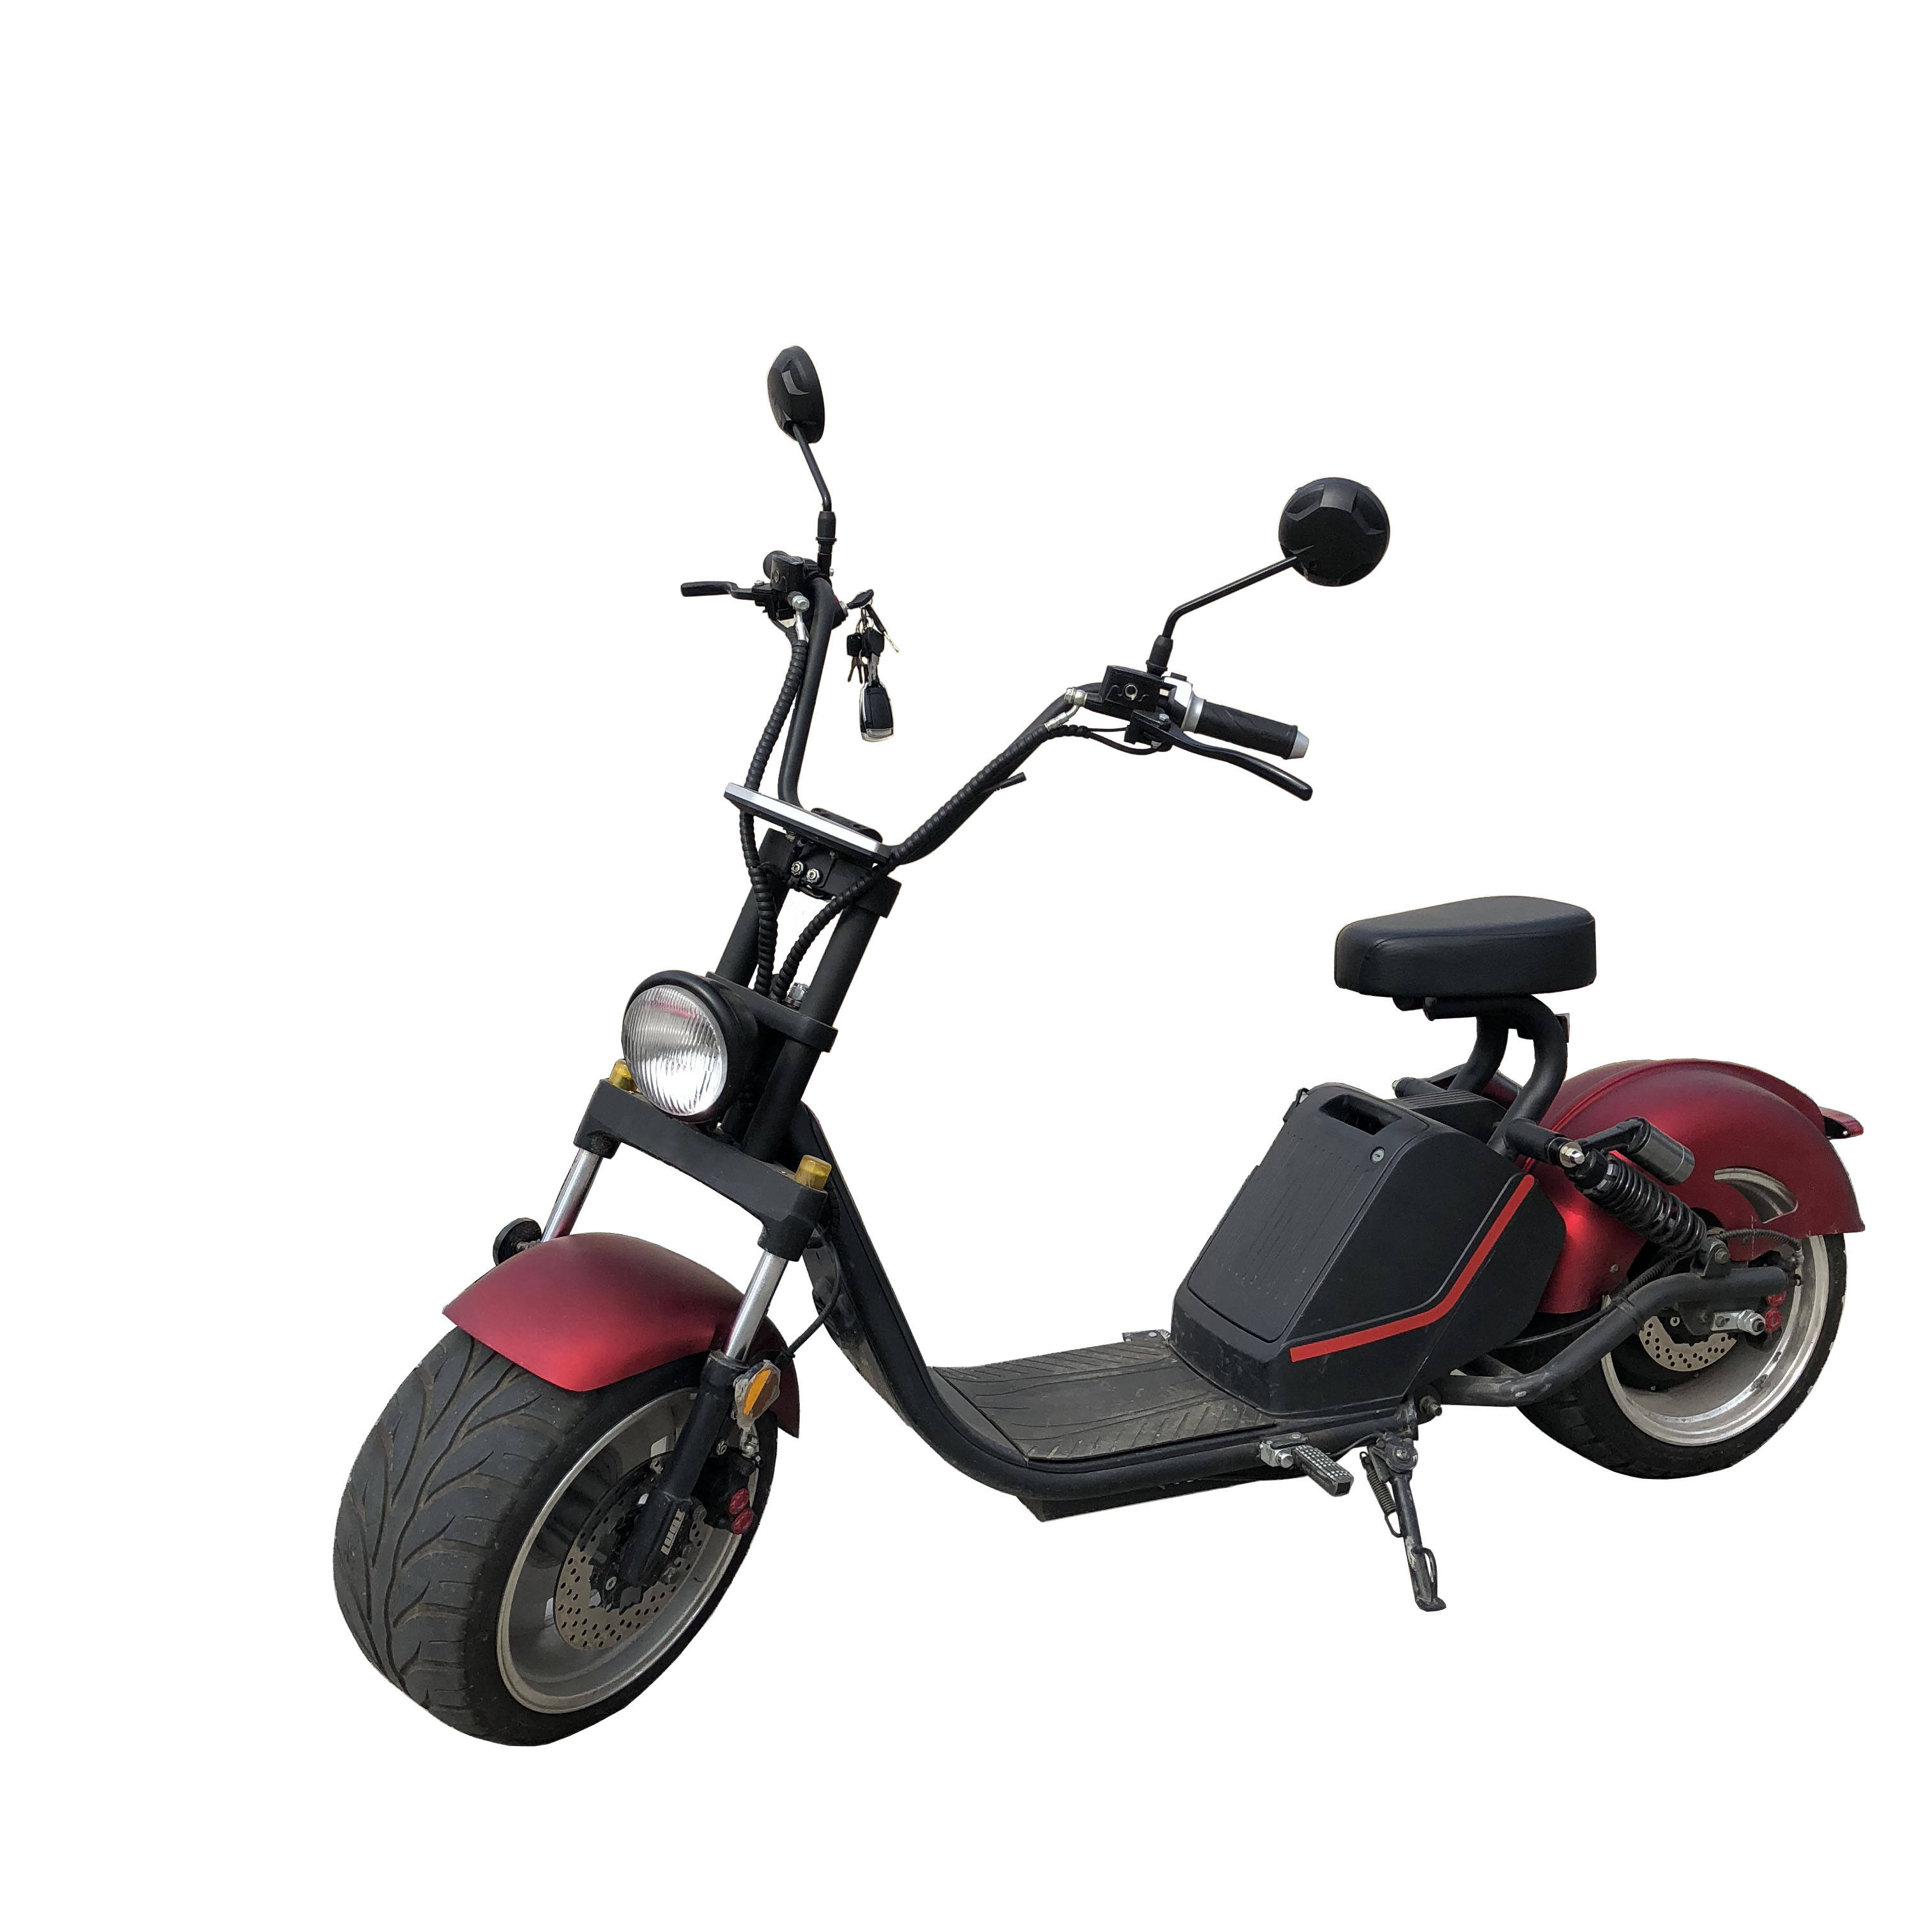 Disposable electric citycoco citycoco spare parts citycoco seat With Lowest Price